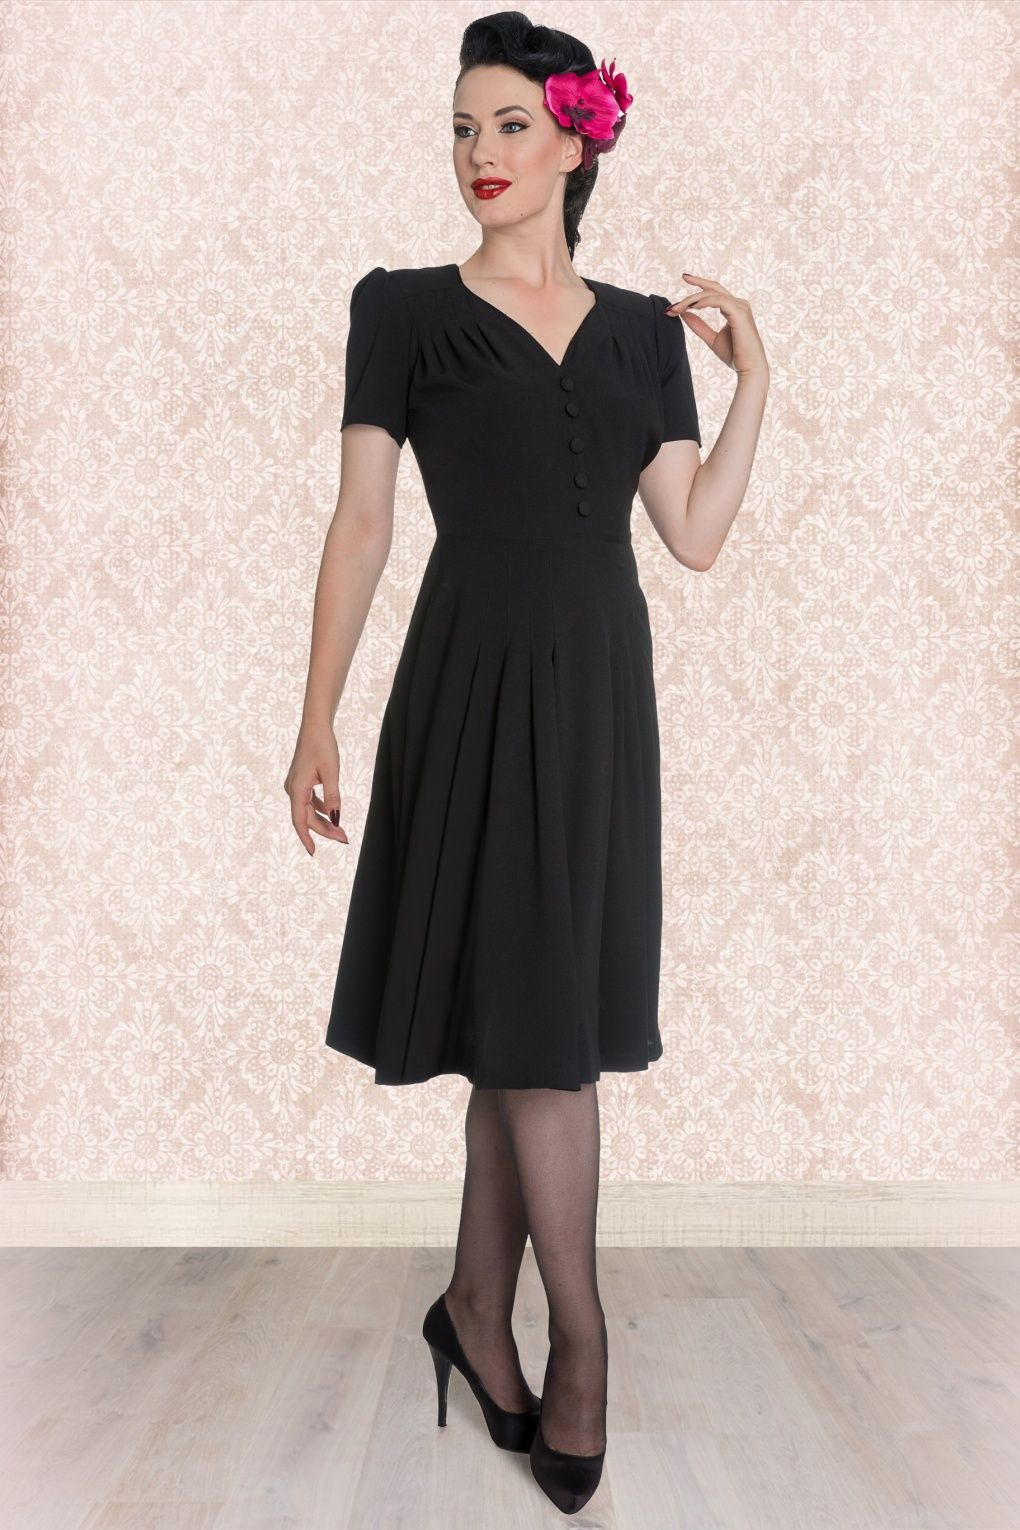 S moira dress in black bunny me pinterest black bunny